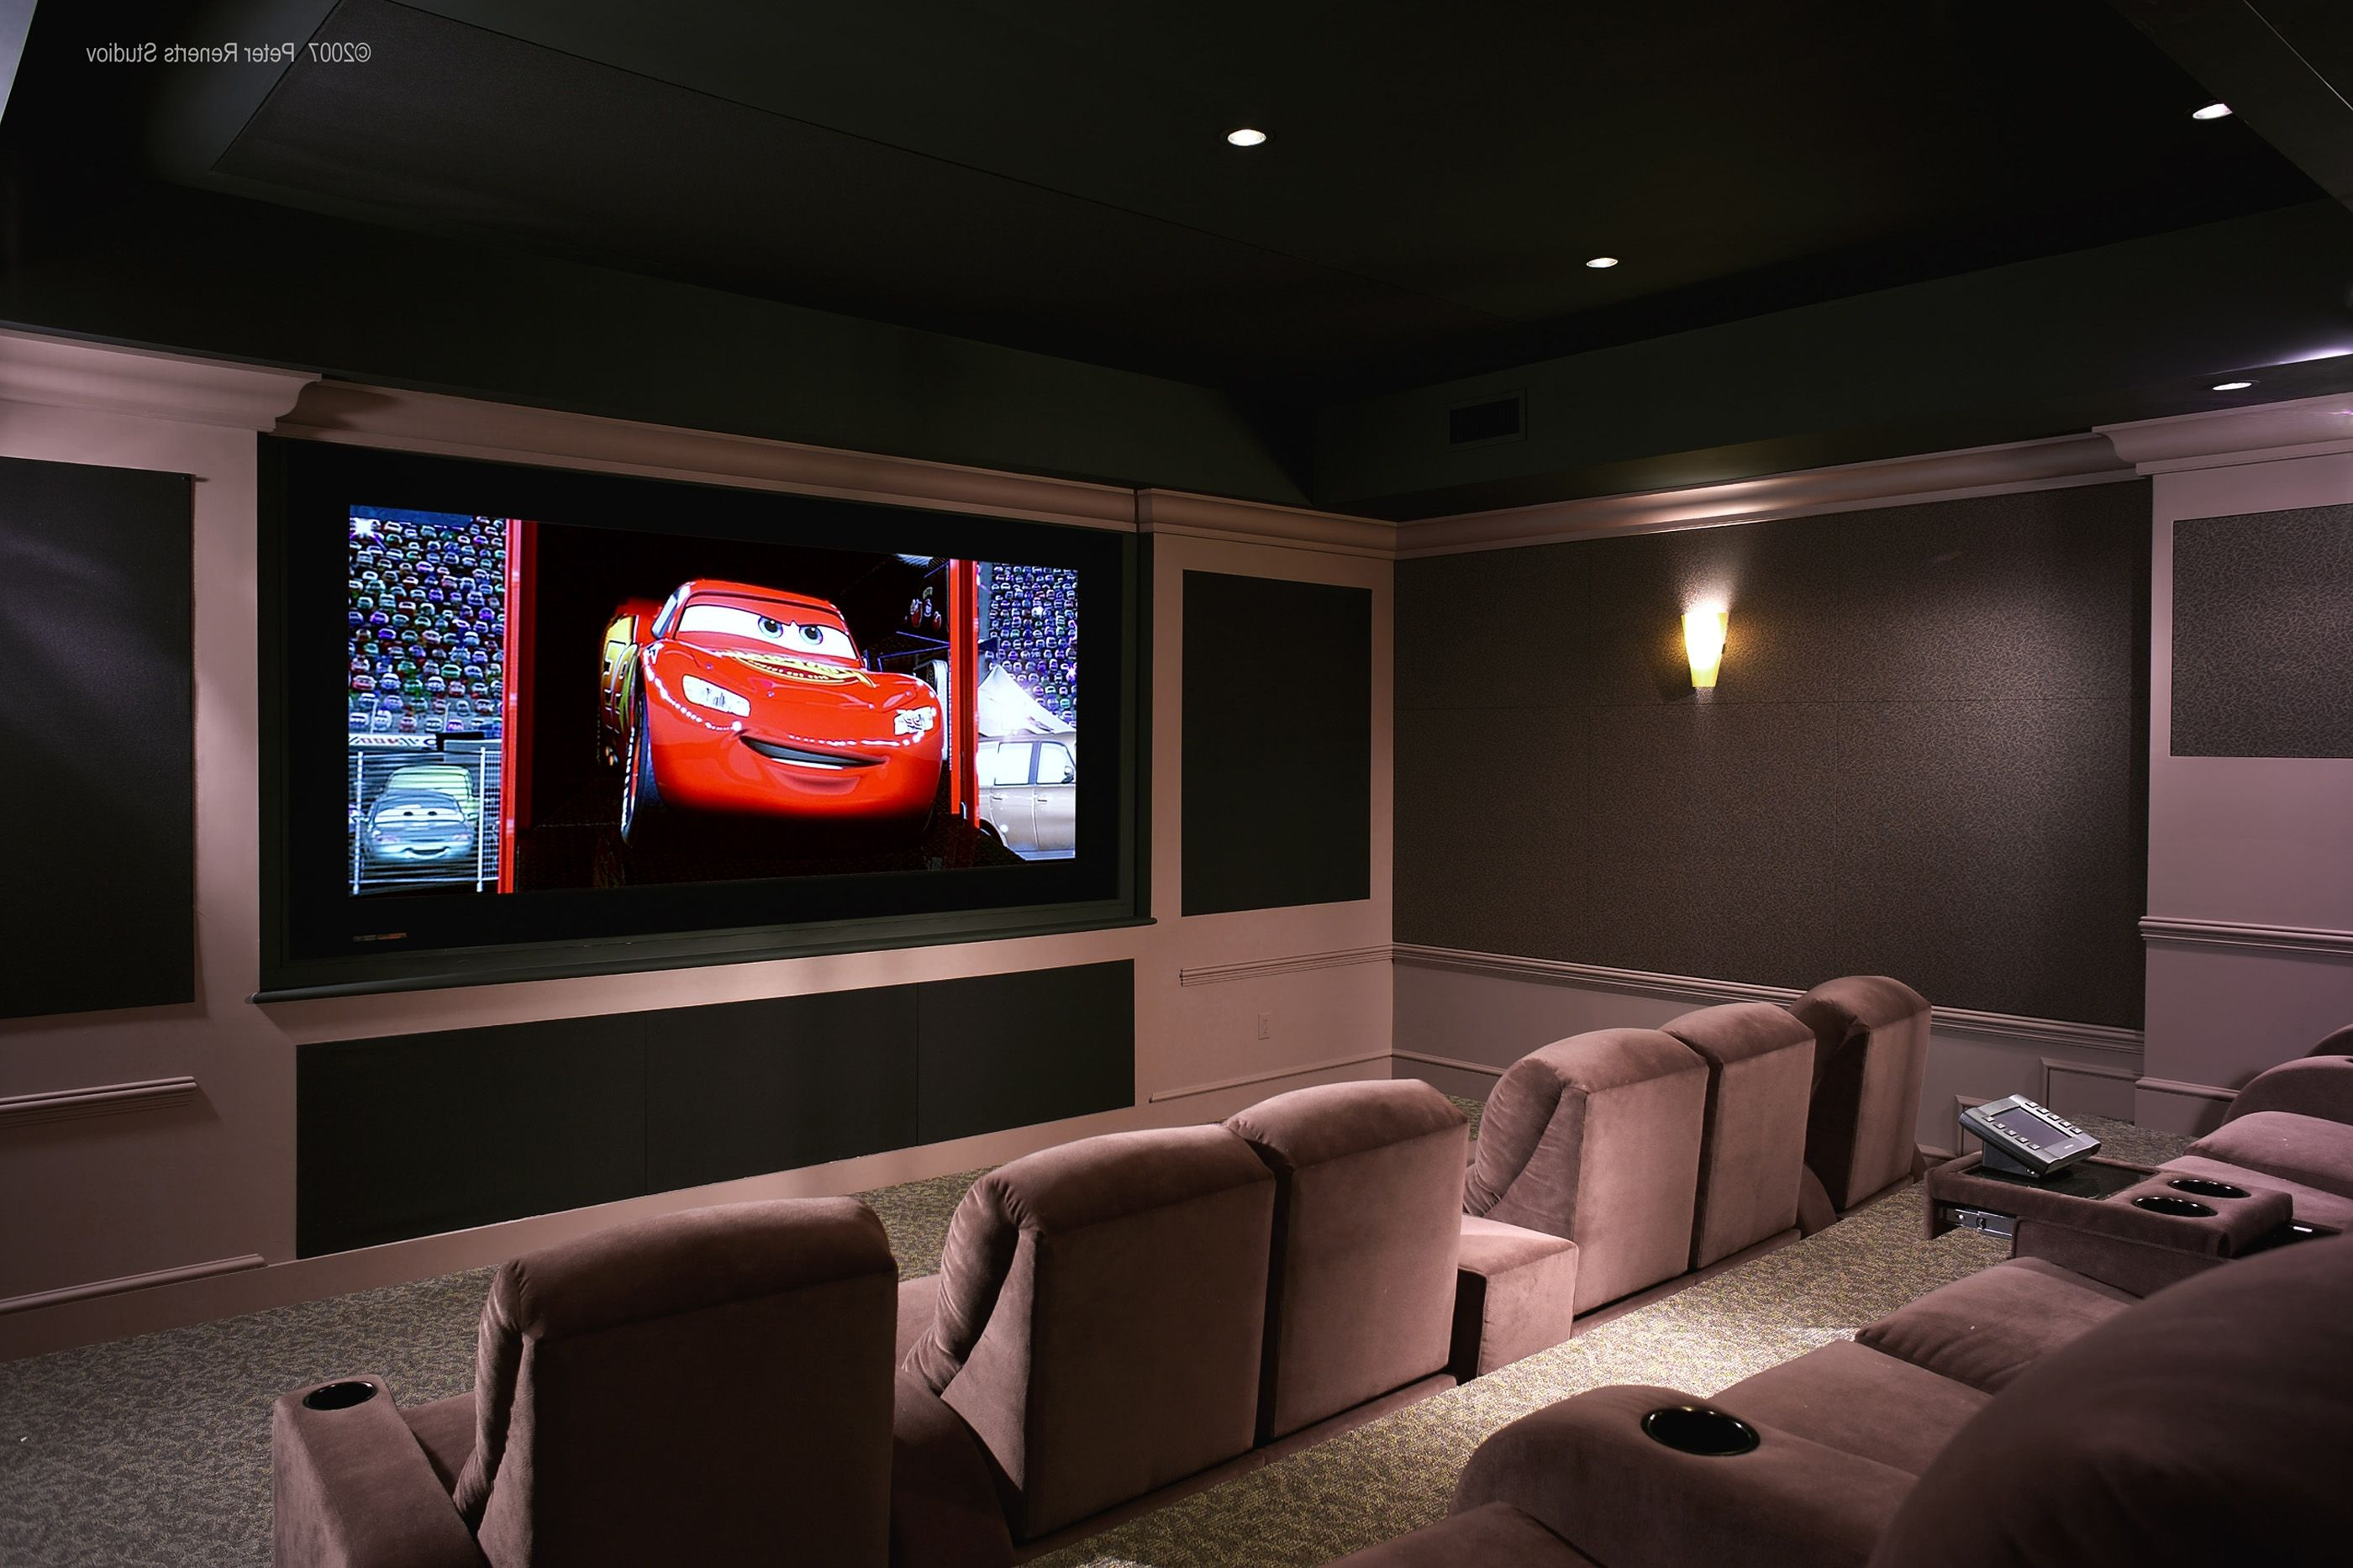 Superieur Home Theater Room Design Modern Home Design Small Home Cinema Room ,Backgrounds